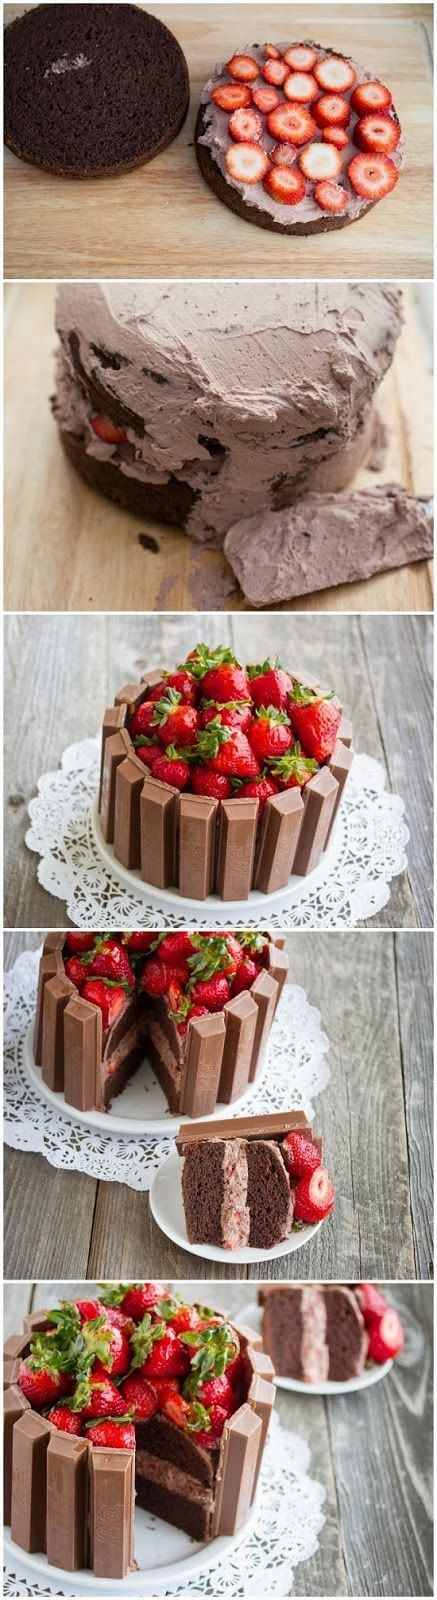 New Food & drink: Strawberry Kit Kat Cake